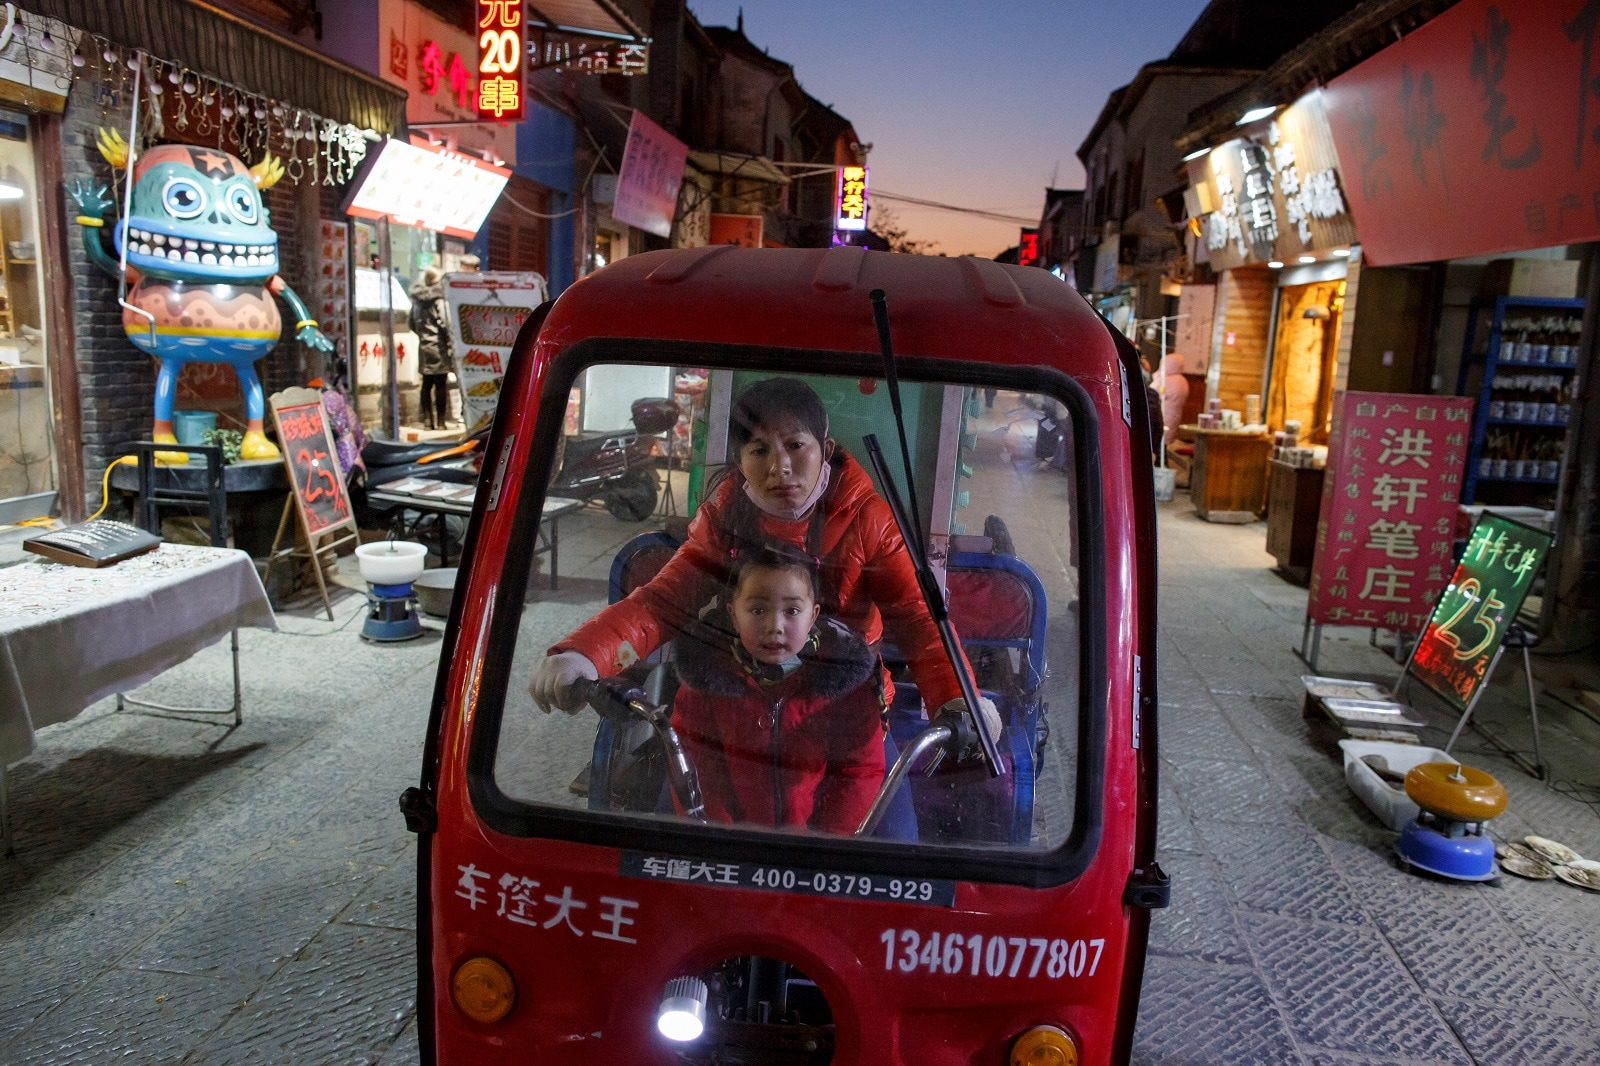 A woman and a child ride an electric tricycle in the old town of Luoyang, Henan province, China January 21, 2019. REUTERS/Thomas Peter